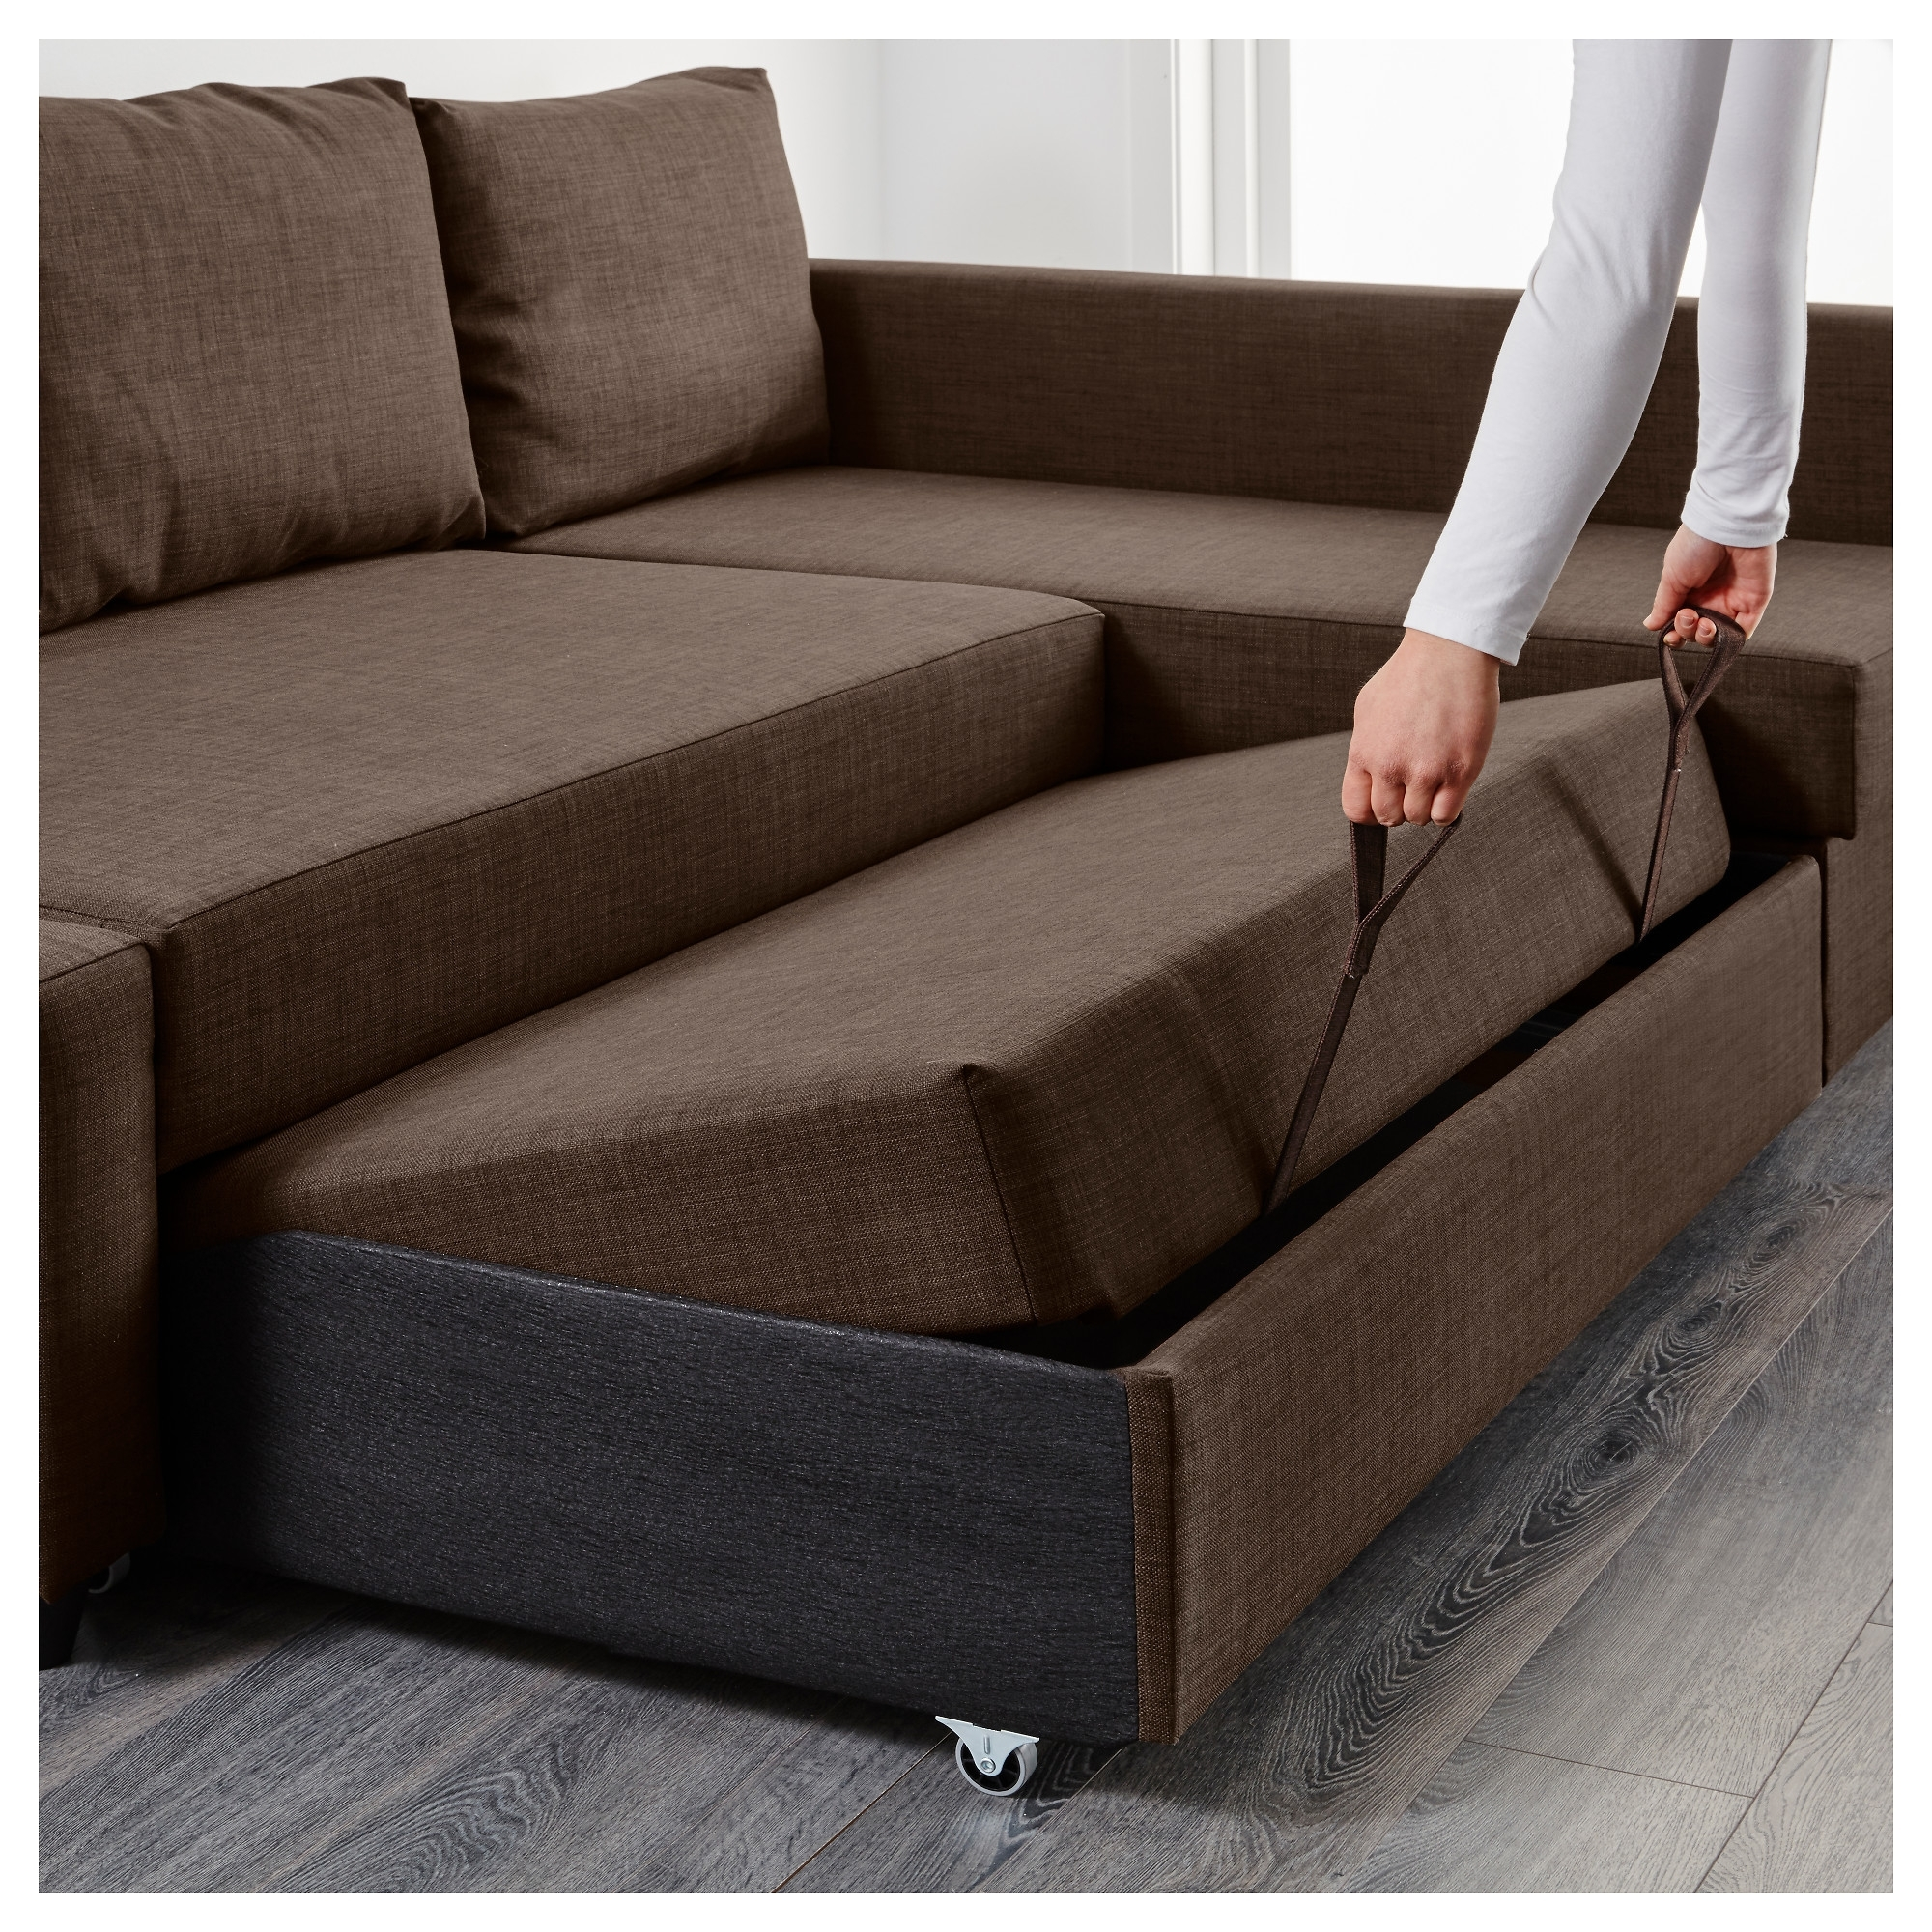 Ikea Sectional Sleeper Sofas For Well Liked Friheten Sleeper Sectional,3 Seat W/storage – Skiftebo Dark Gray (Gallery 4 of 20)